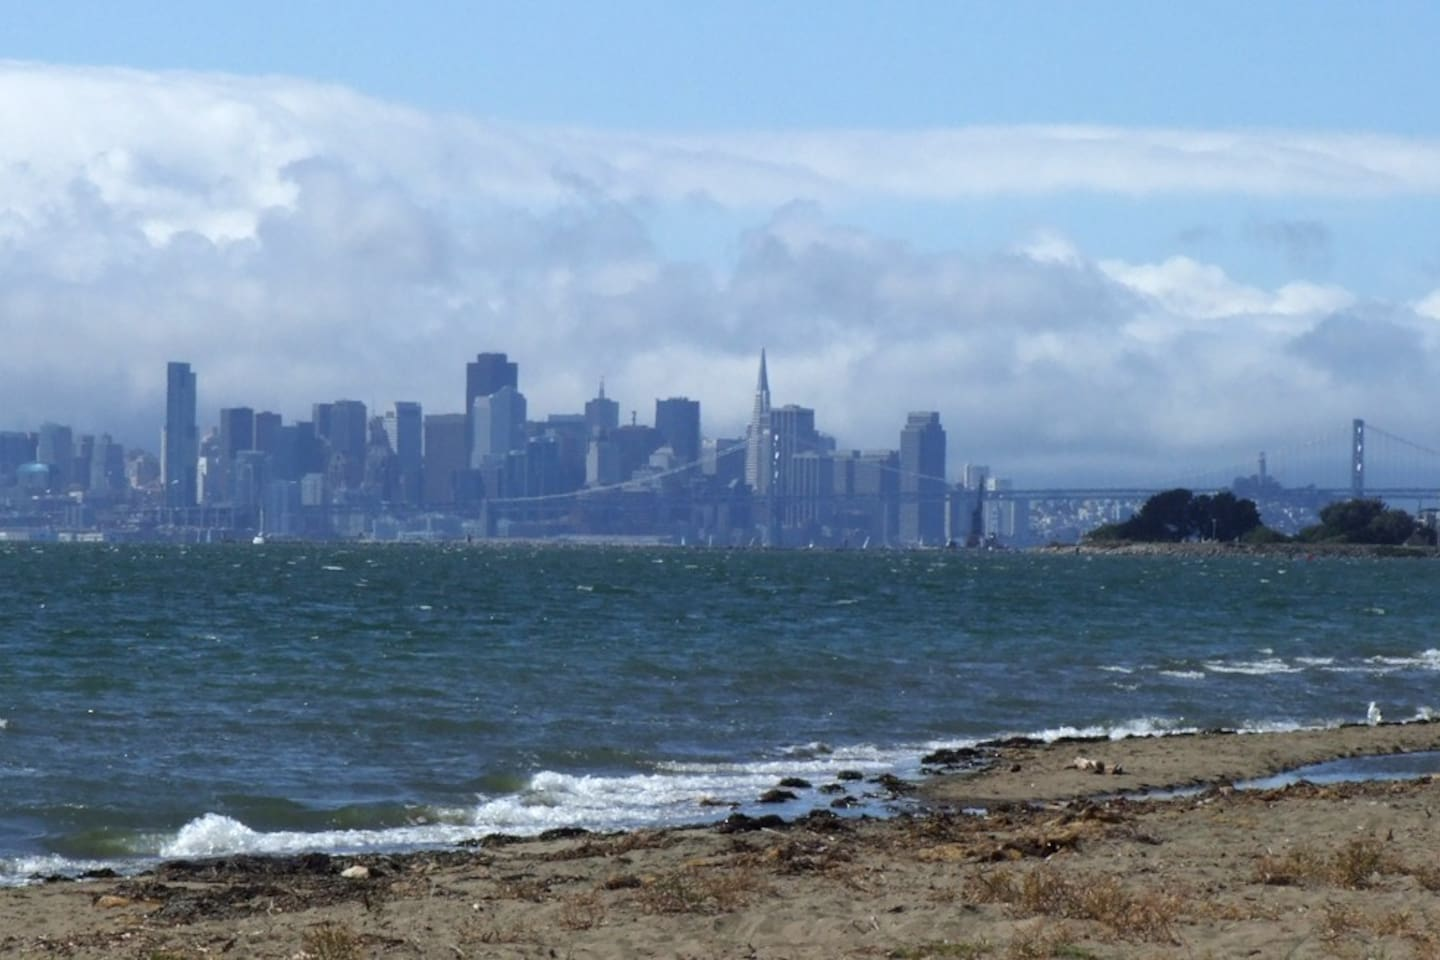 We are near the beach with a view of the SF skyline.